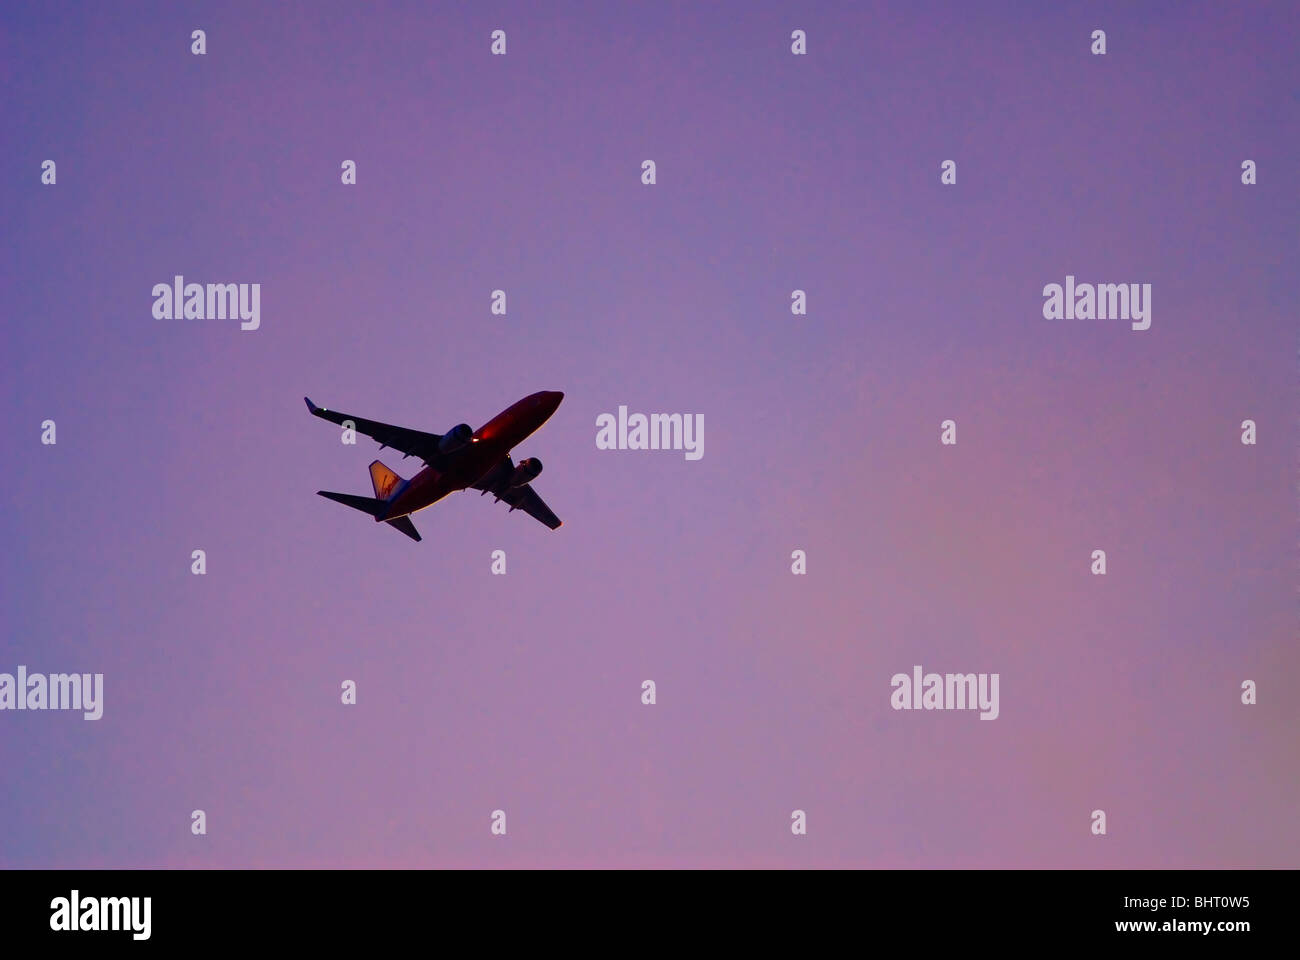 Airliner flying in sunset sky - Stock Image